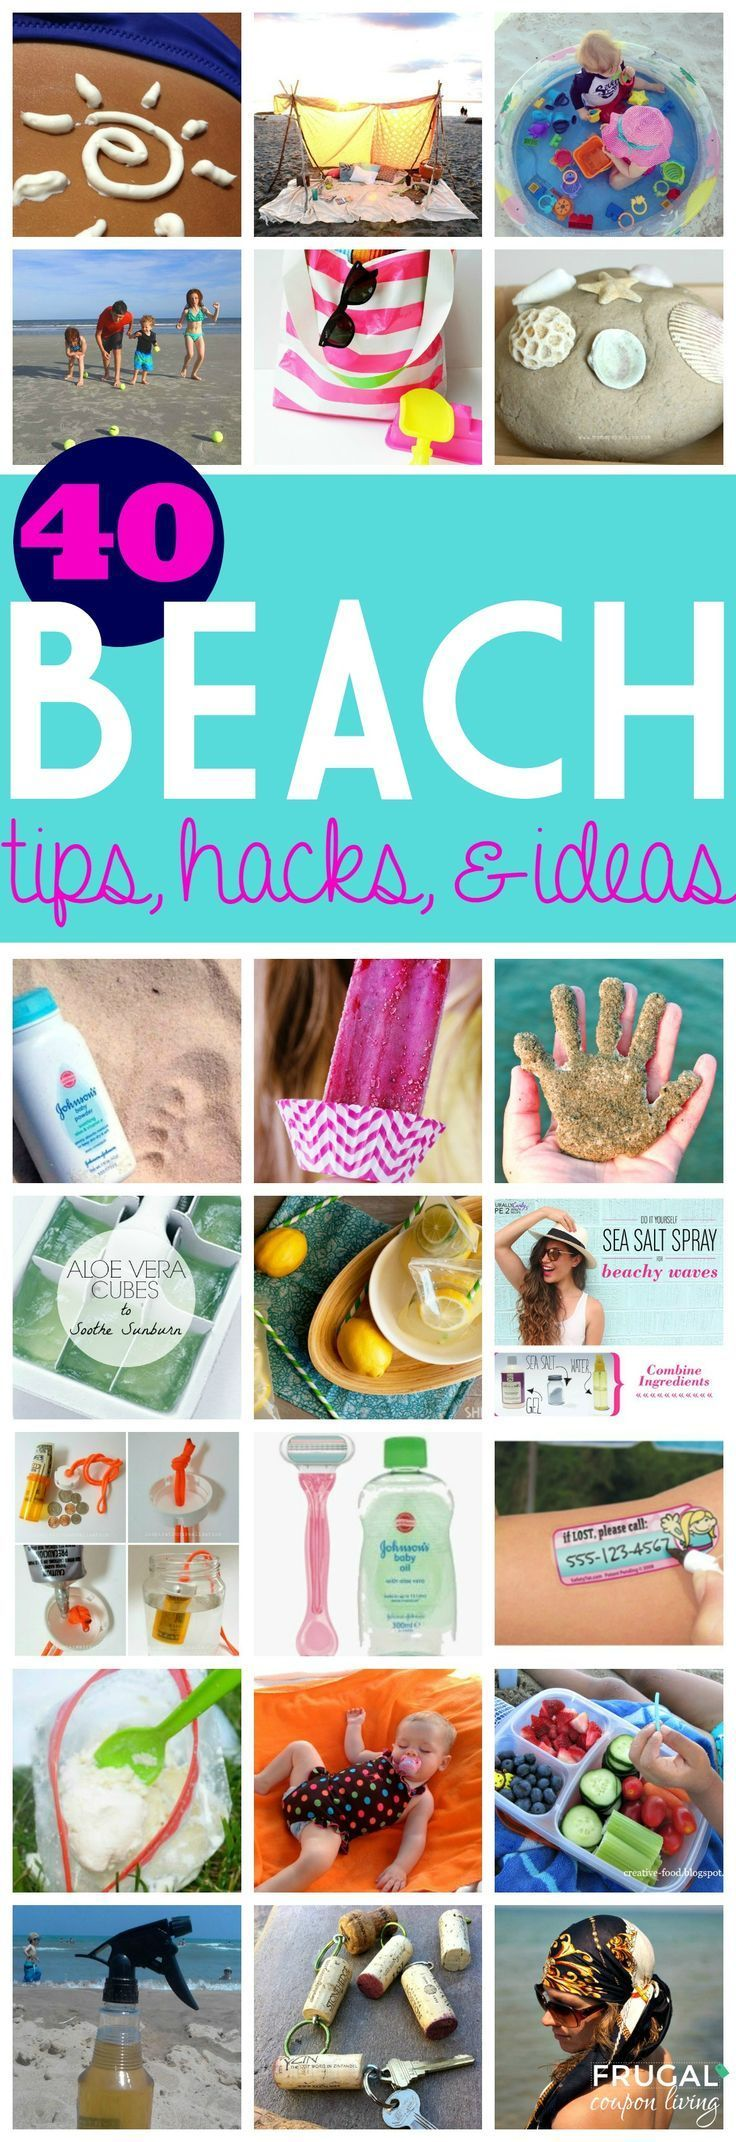 40 Beach Tips and Tricks - Hacks and Ideas for Your Trip to the Santravel hacks, travel hacking d. Round-Up on Fruugal Coupon Living travel hacks, travel hacking